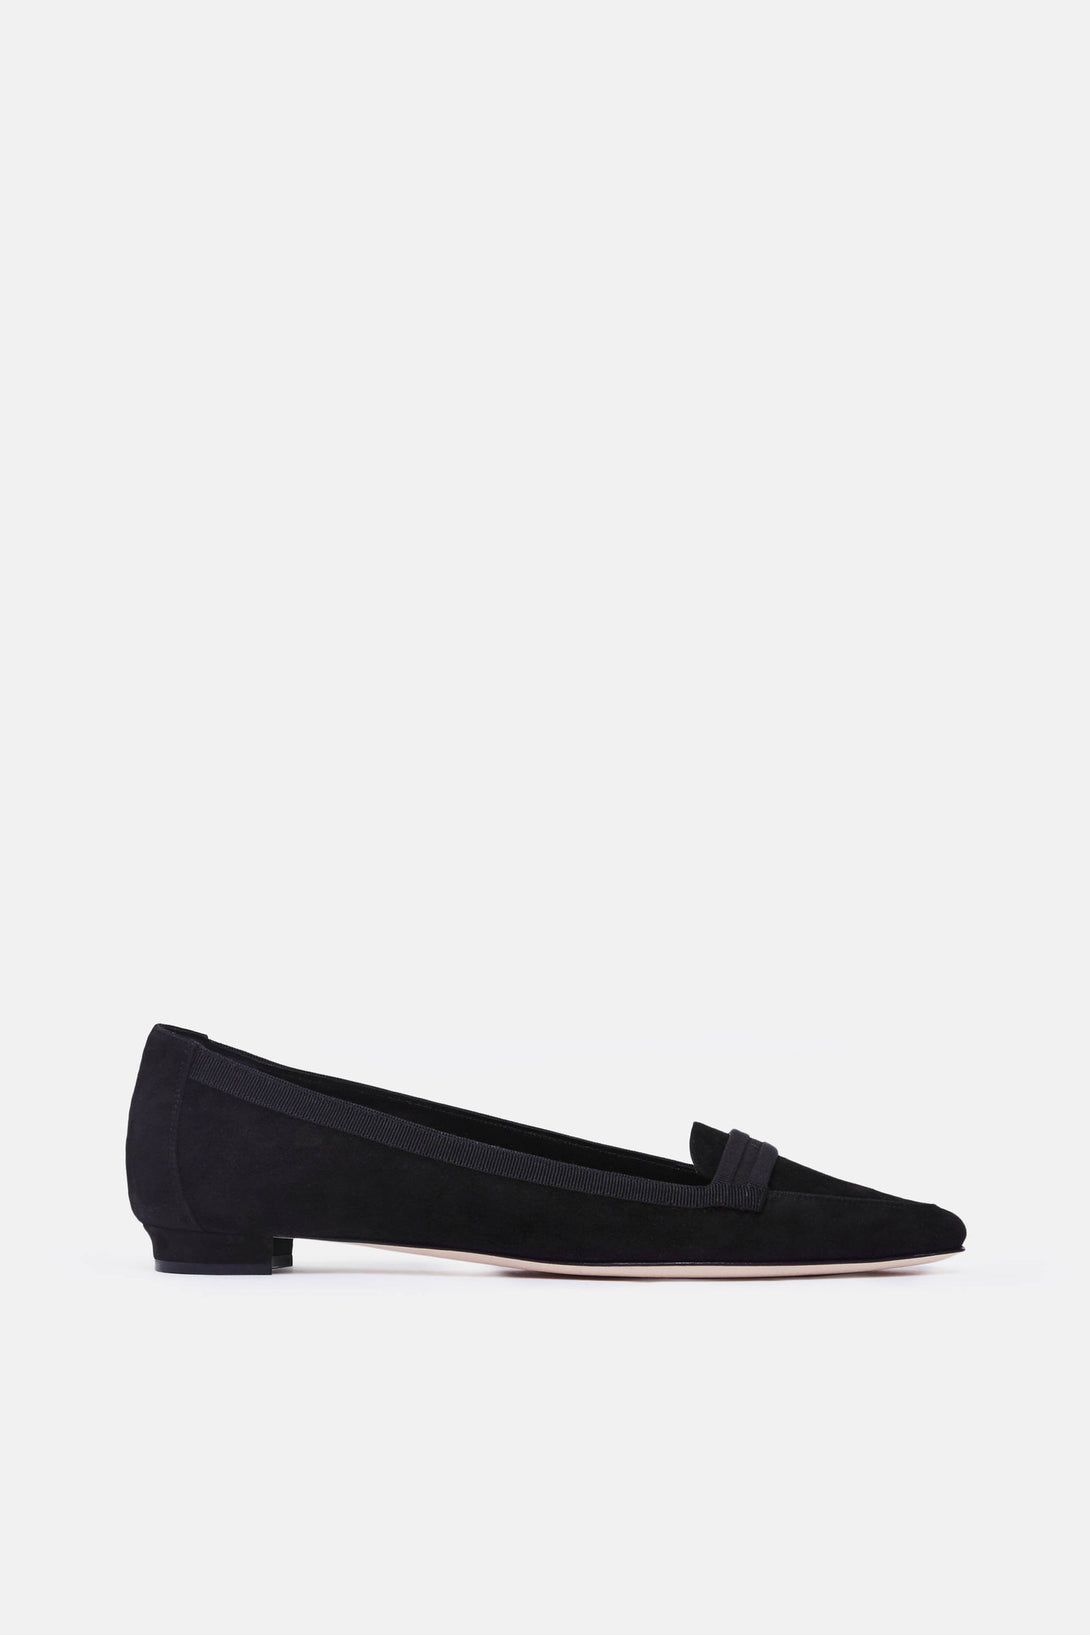 Salute Loafer - Black Suede